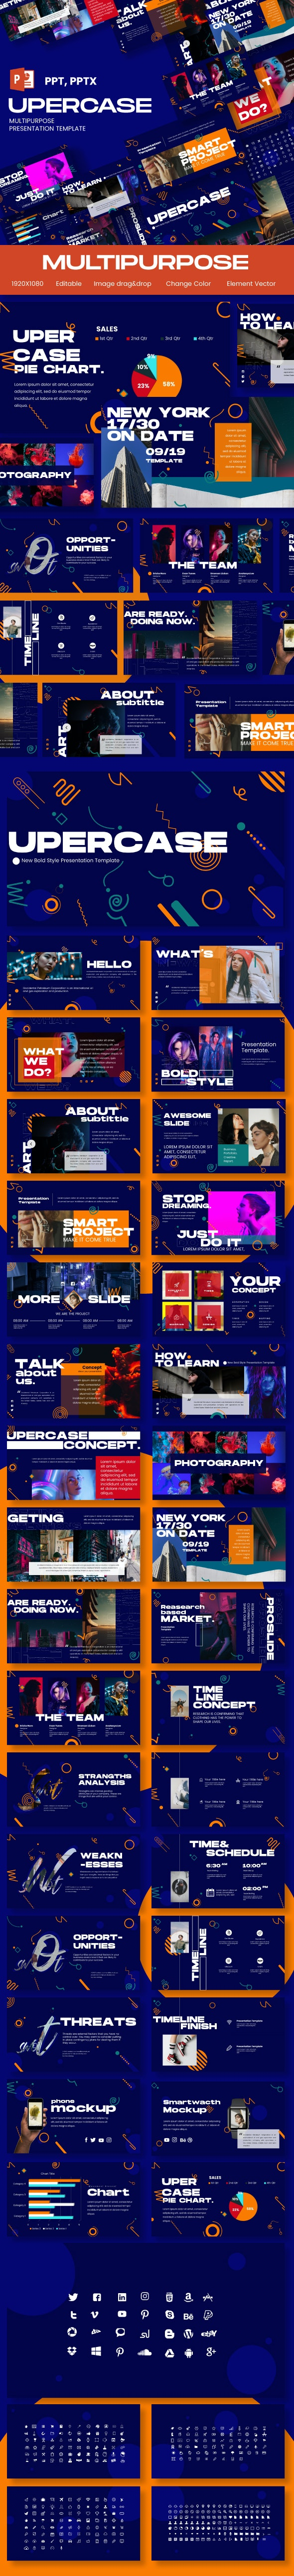 Upercase Multipurpose Presentation Template - Business PowerPoint Templates